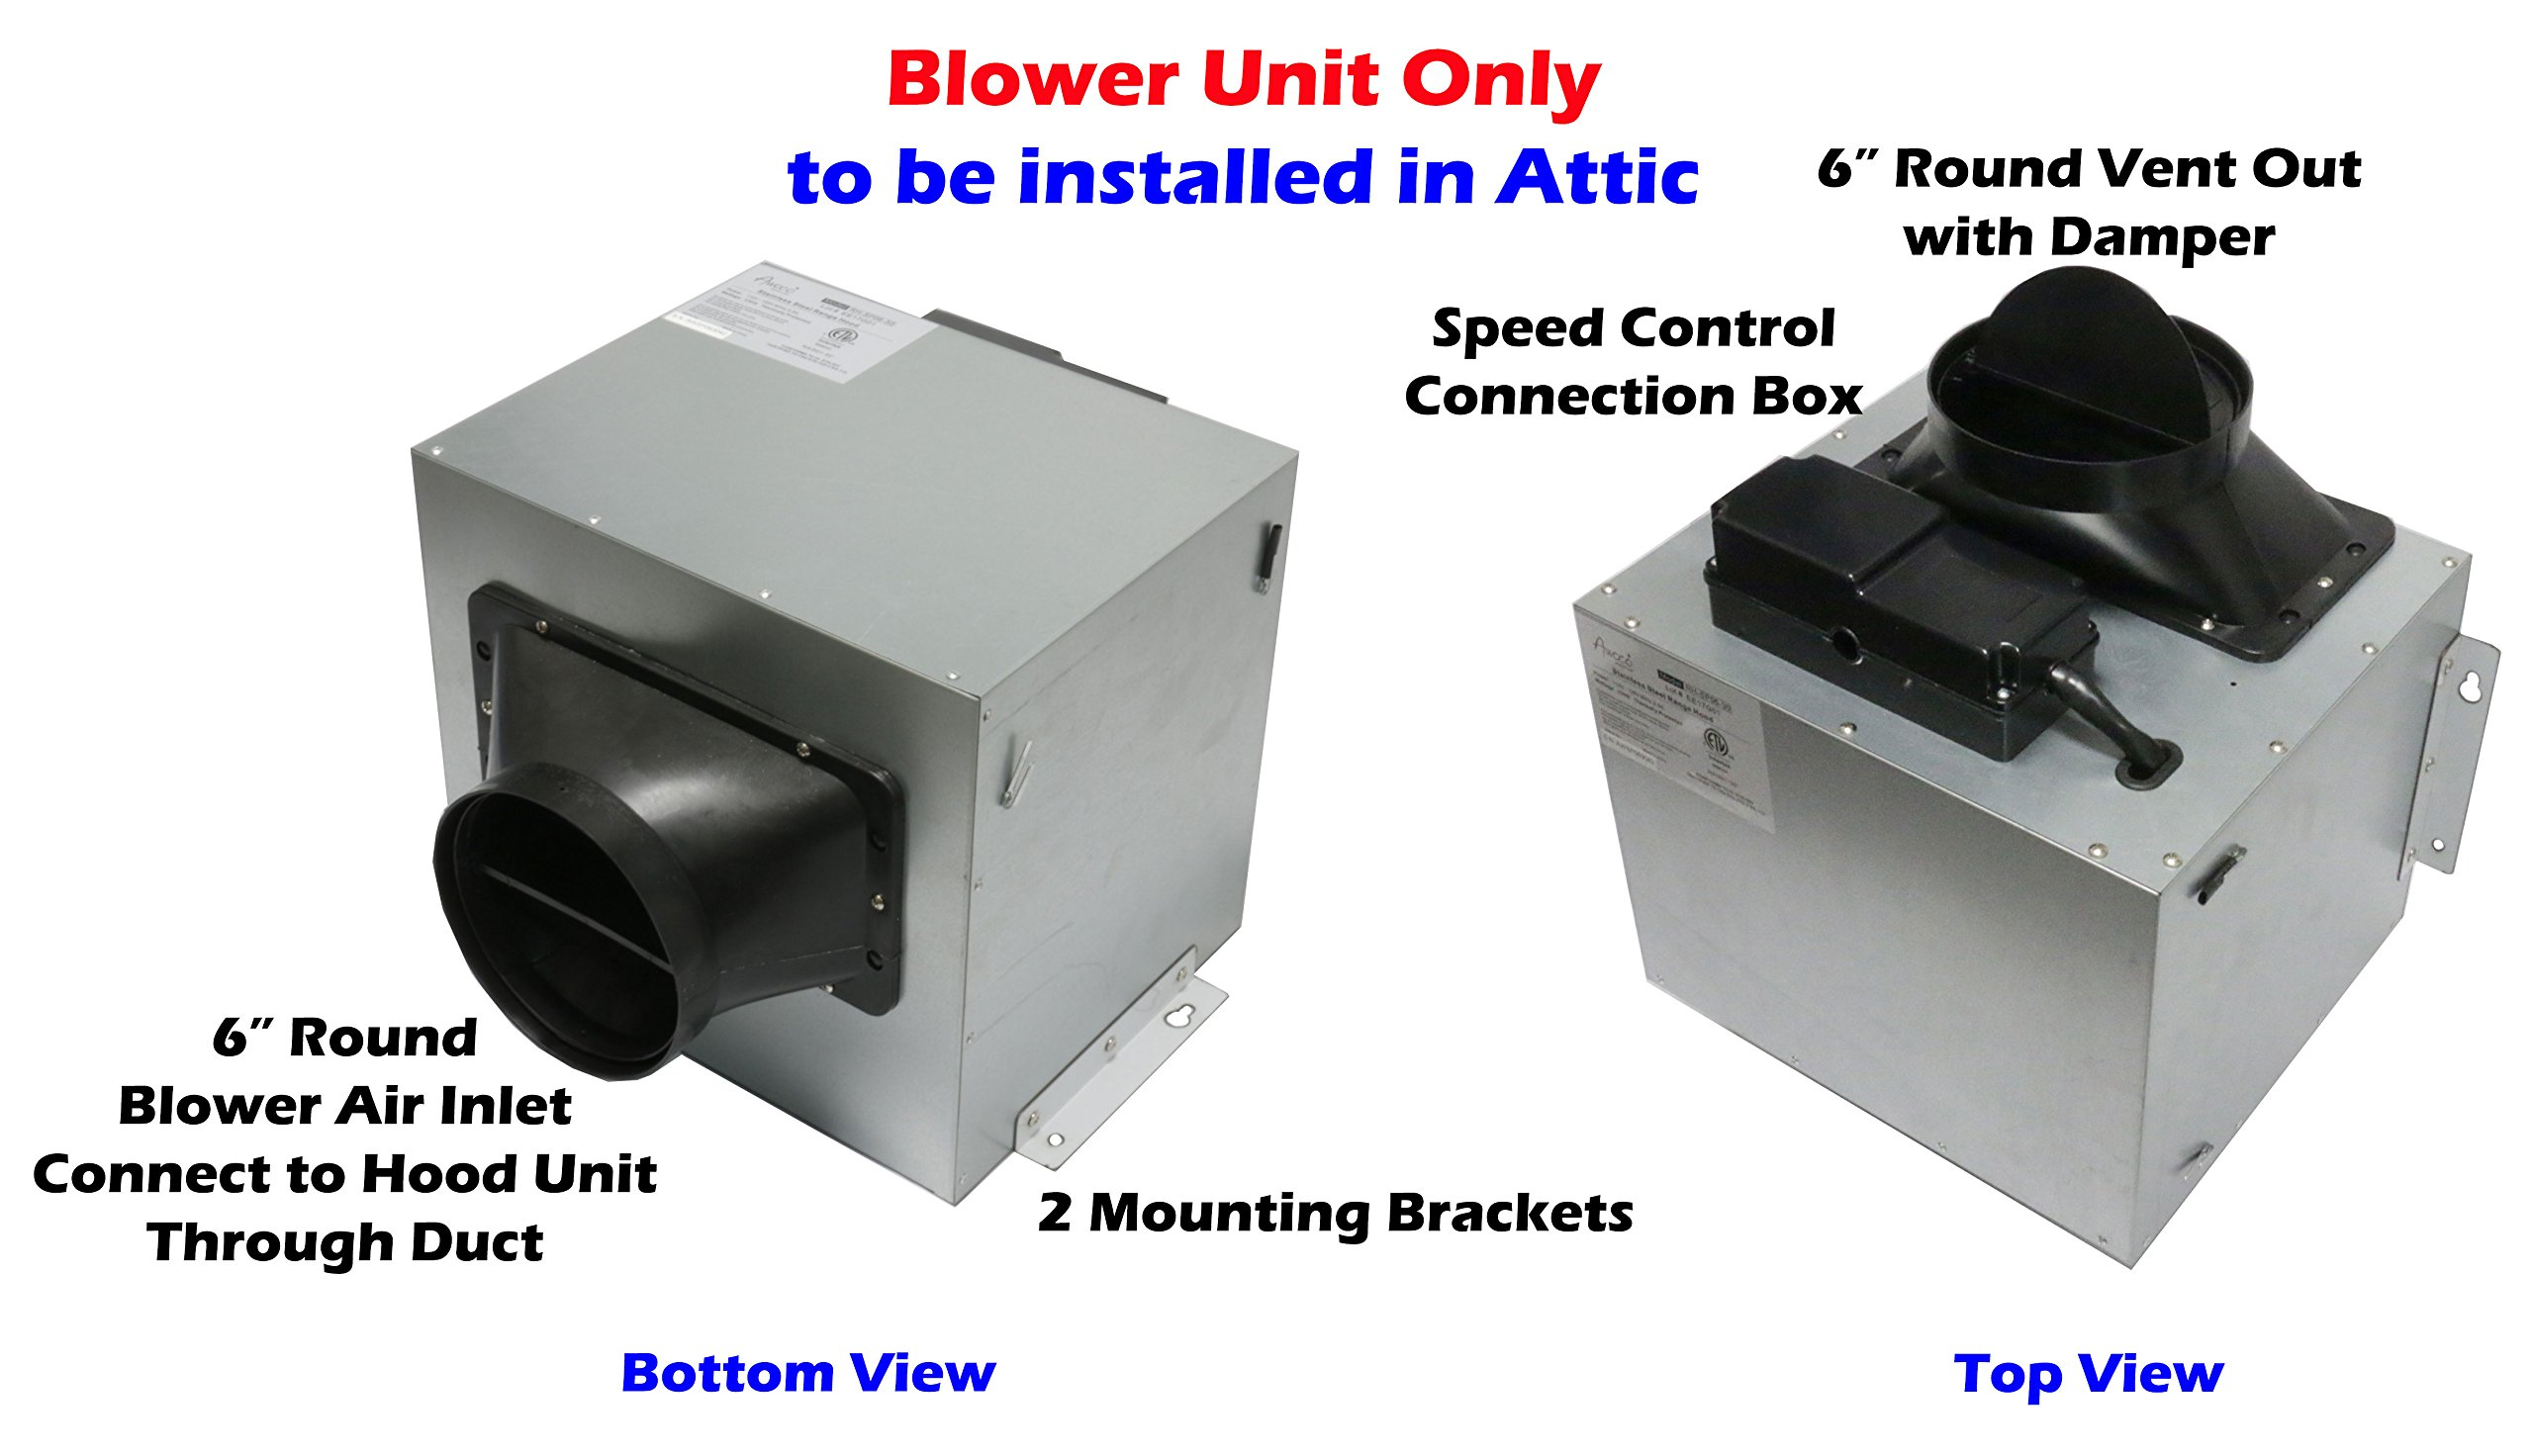 Awoco Split Super Quiet Range Hood Blower Unit Installed in Attic Work with 30'' or 36'' Hood Unit, 4 Speeds 900CFM, 6'' Round Vent In and Out (Blower Unit Only) by Awoco (Image #3)